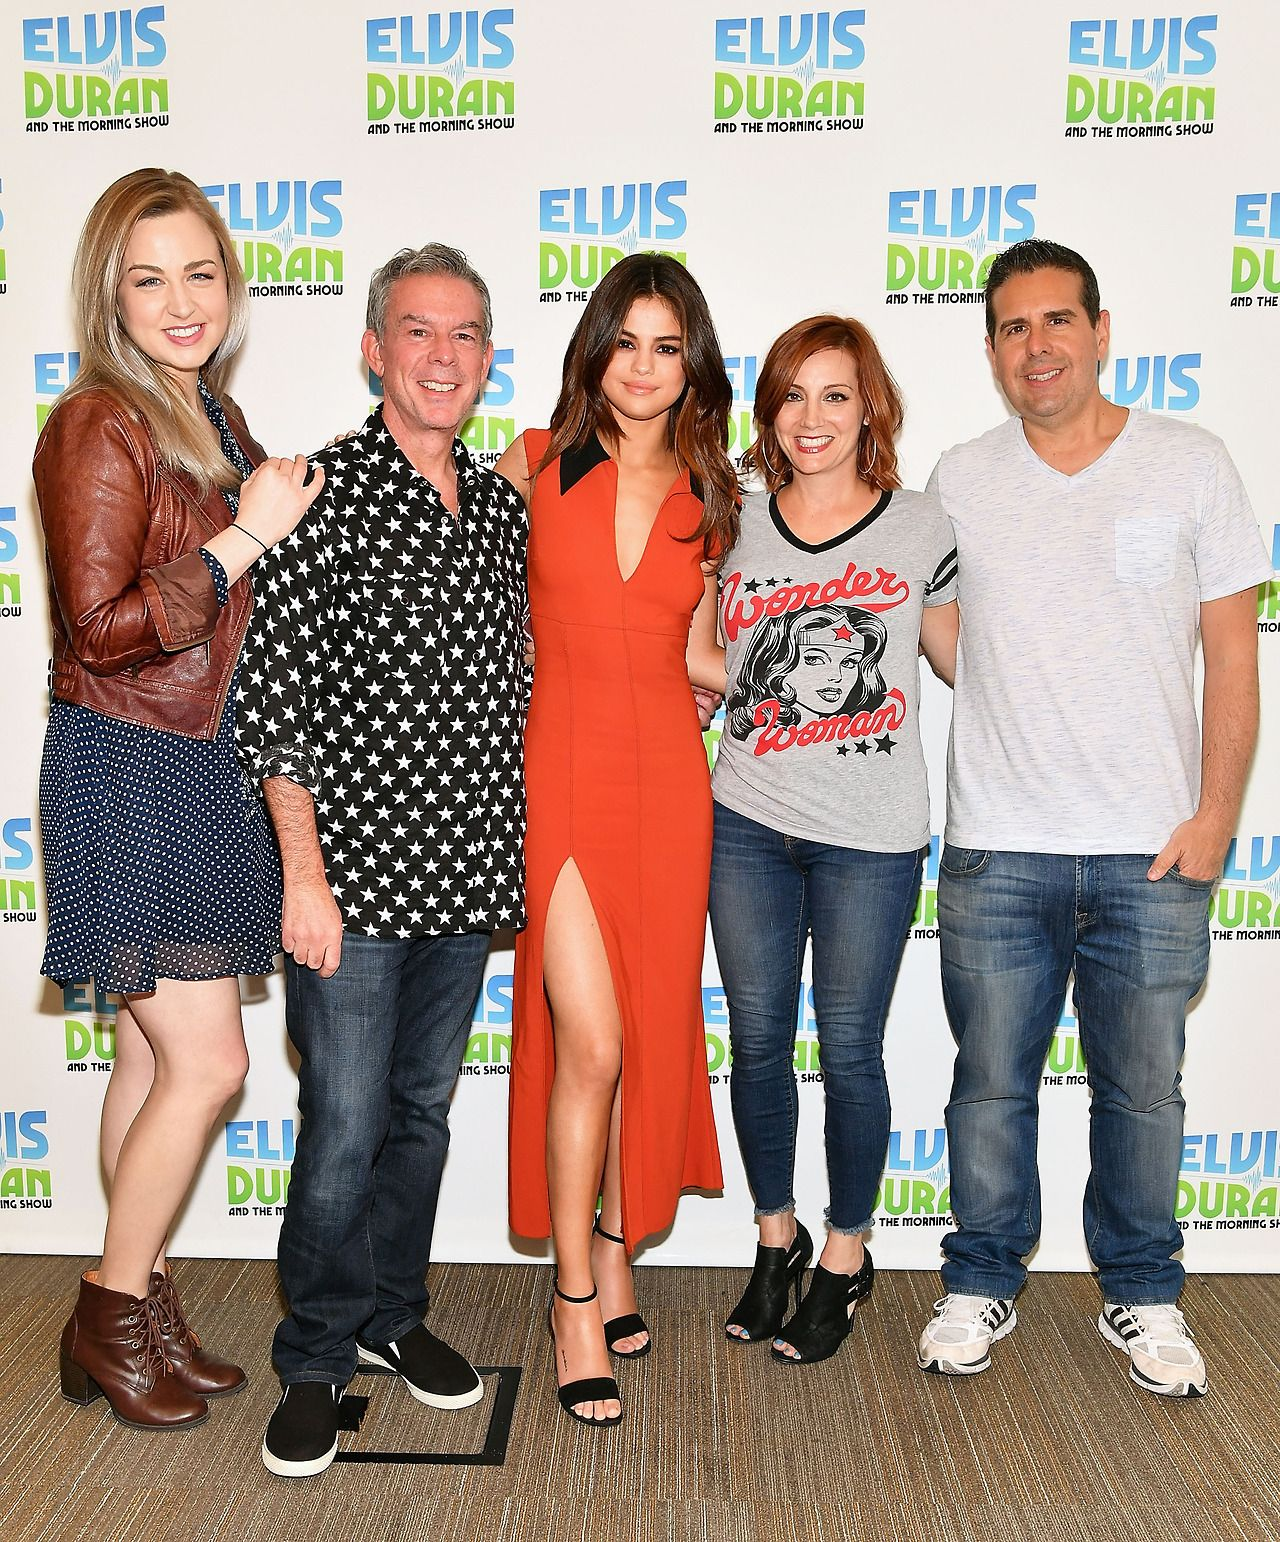 Selena Gomez News — June 5: [More] Selena during her interview with...